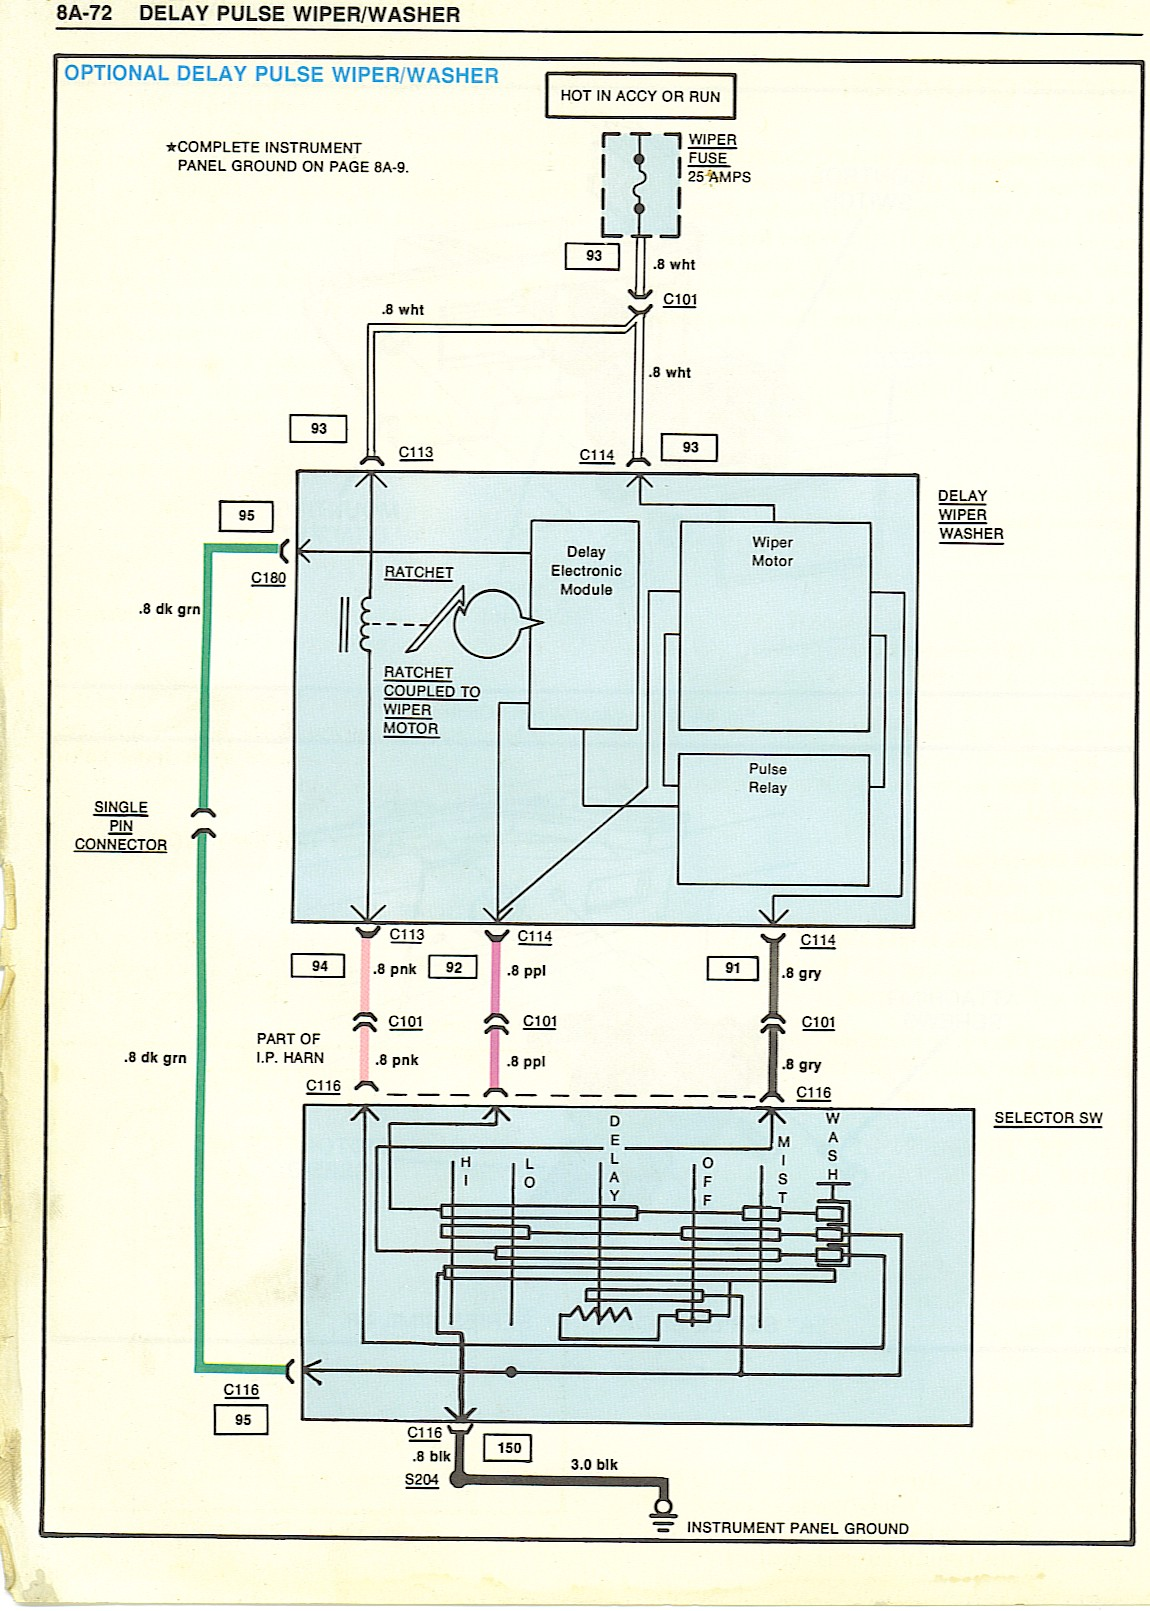 82 chevy truck courtesy light wiring diagram    wiring    diagrams     wiring    diagrams